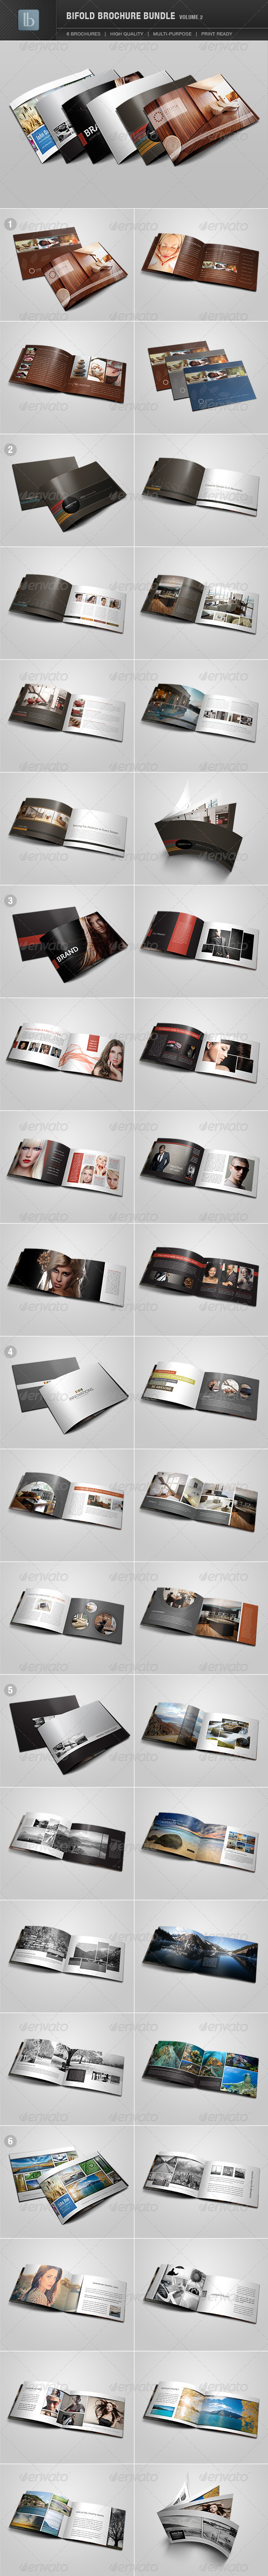 Bifold Brochure Bundle | Volume 2 - Brochures Print Templates